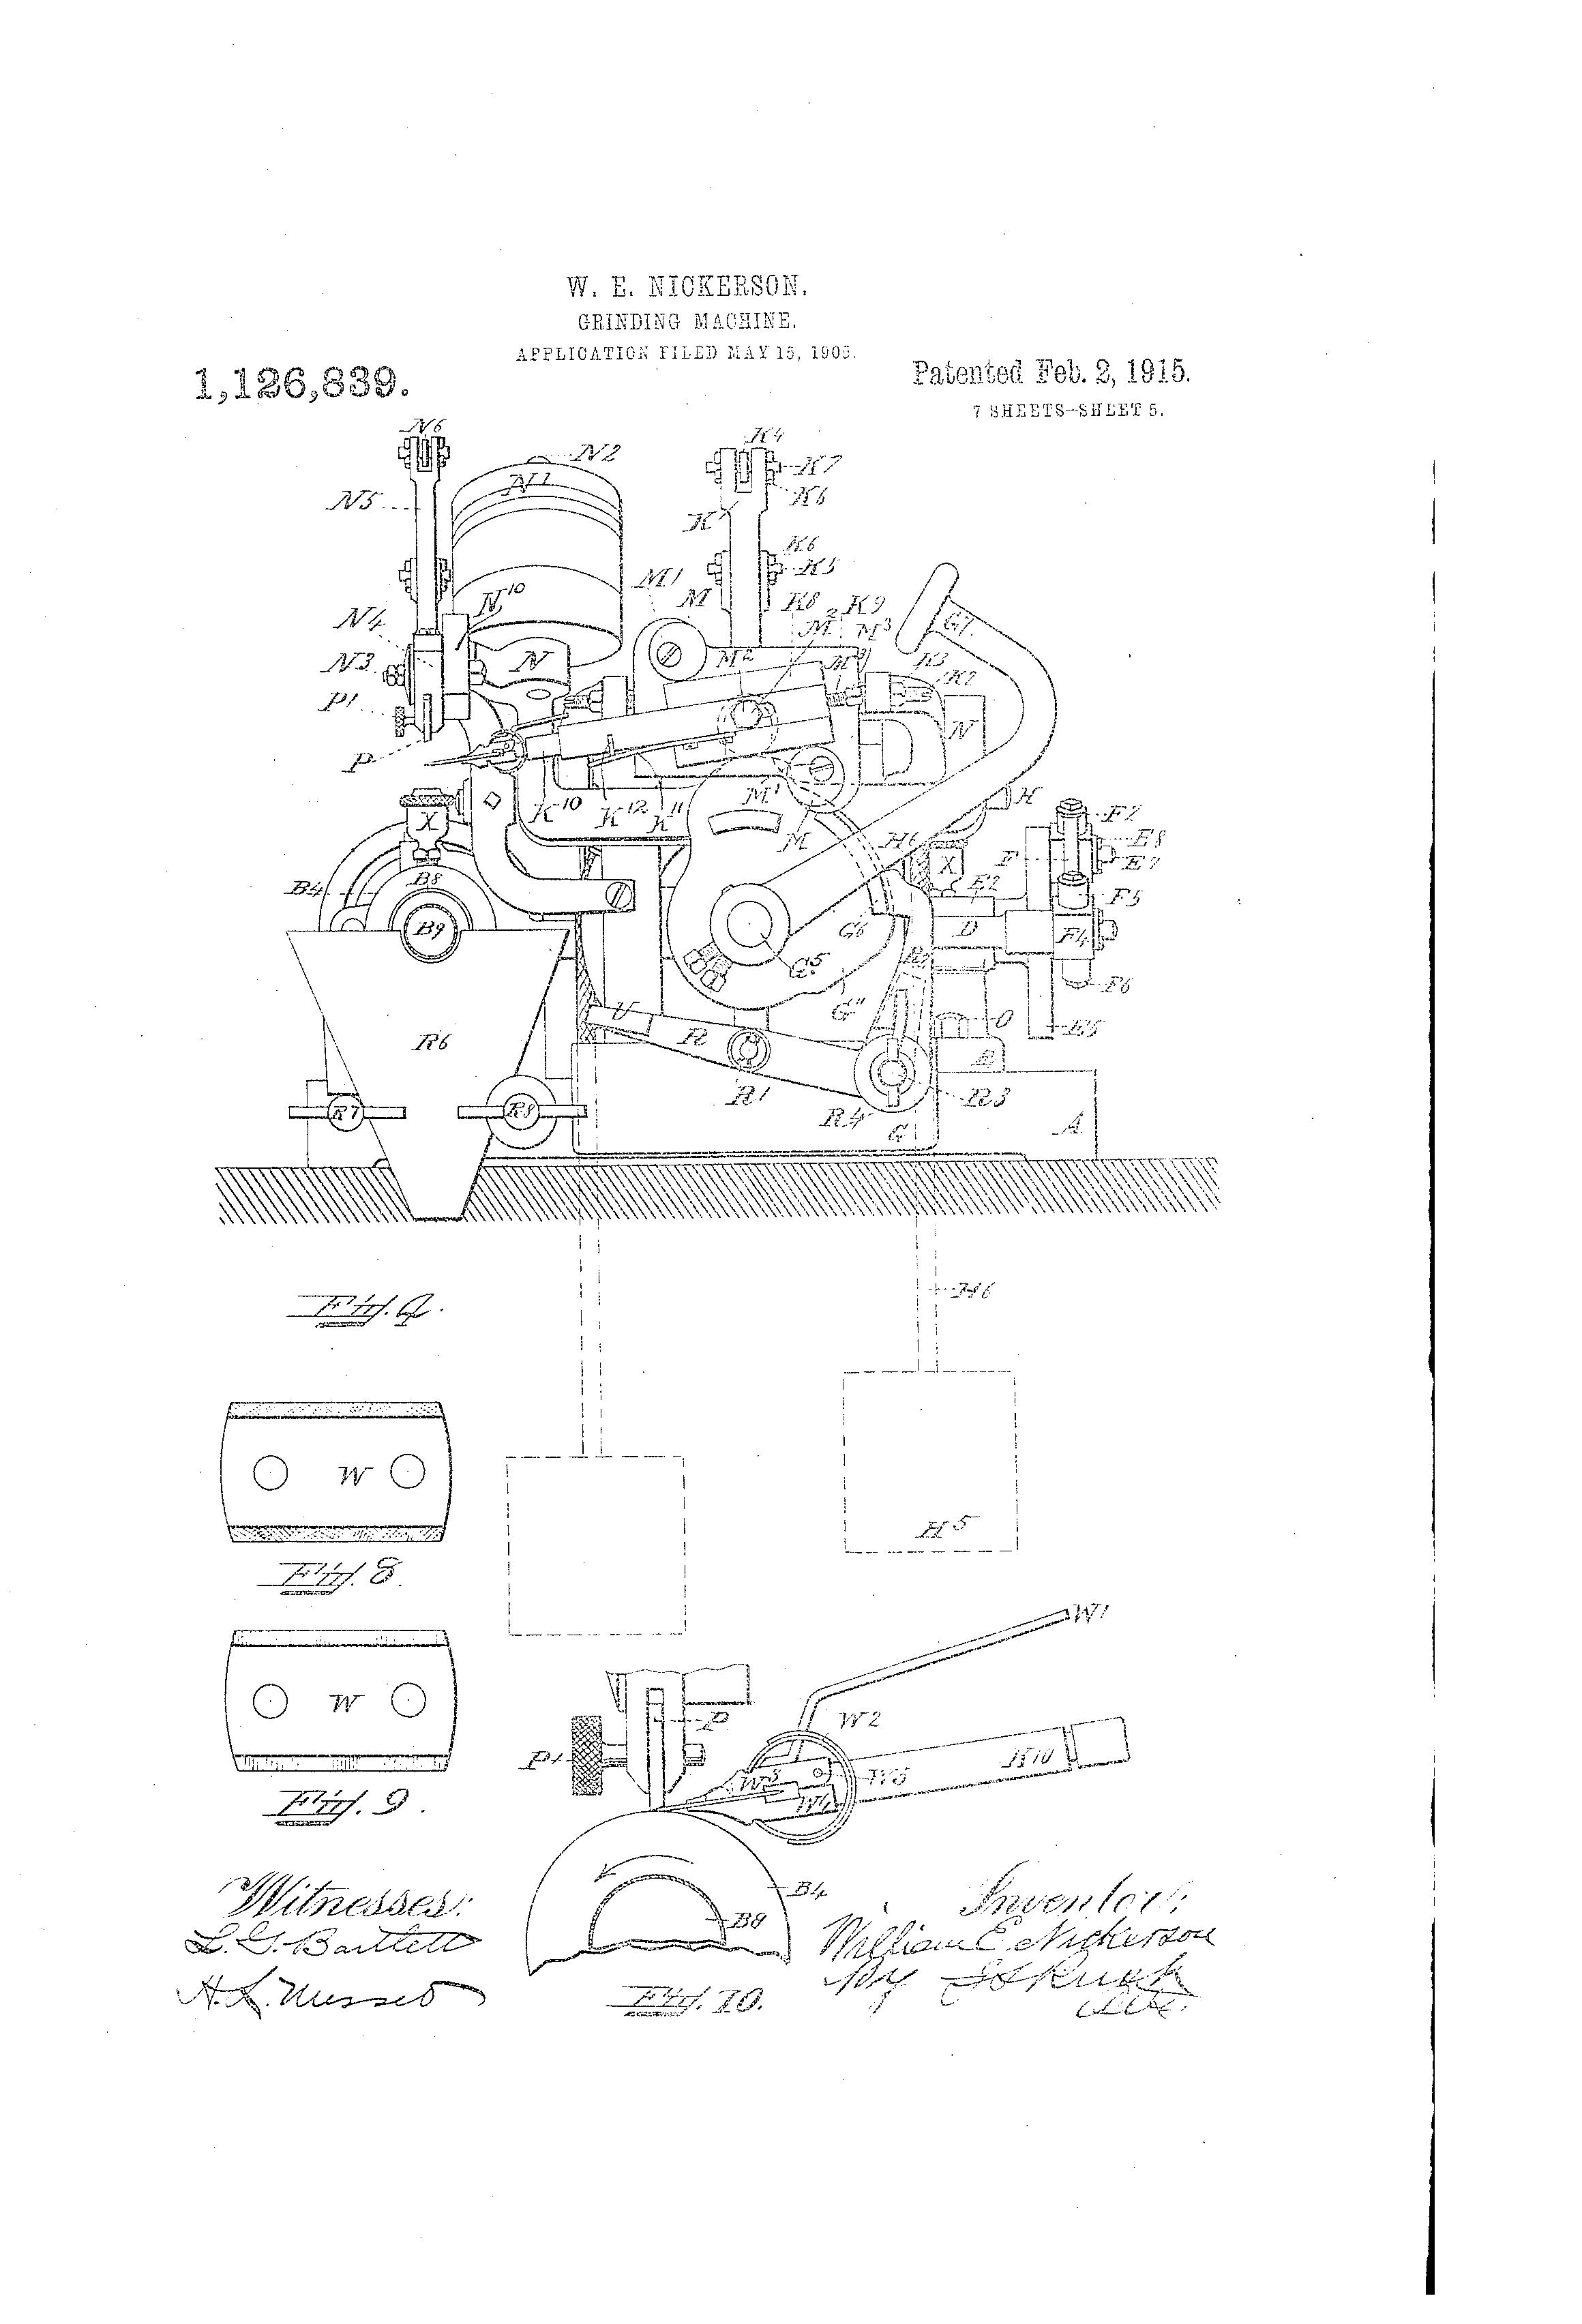 [Image: US1126839-drawings-page-5.png]